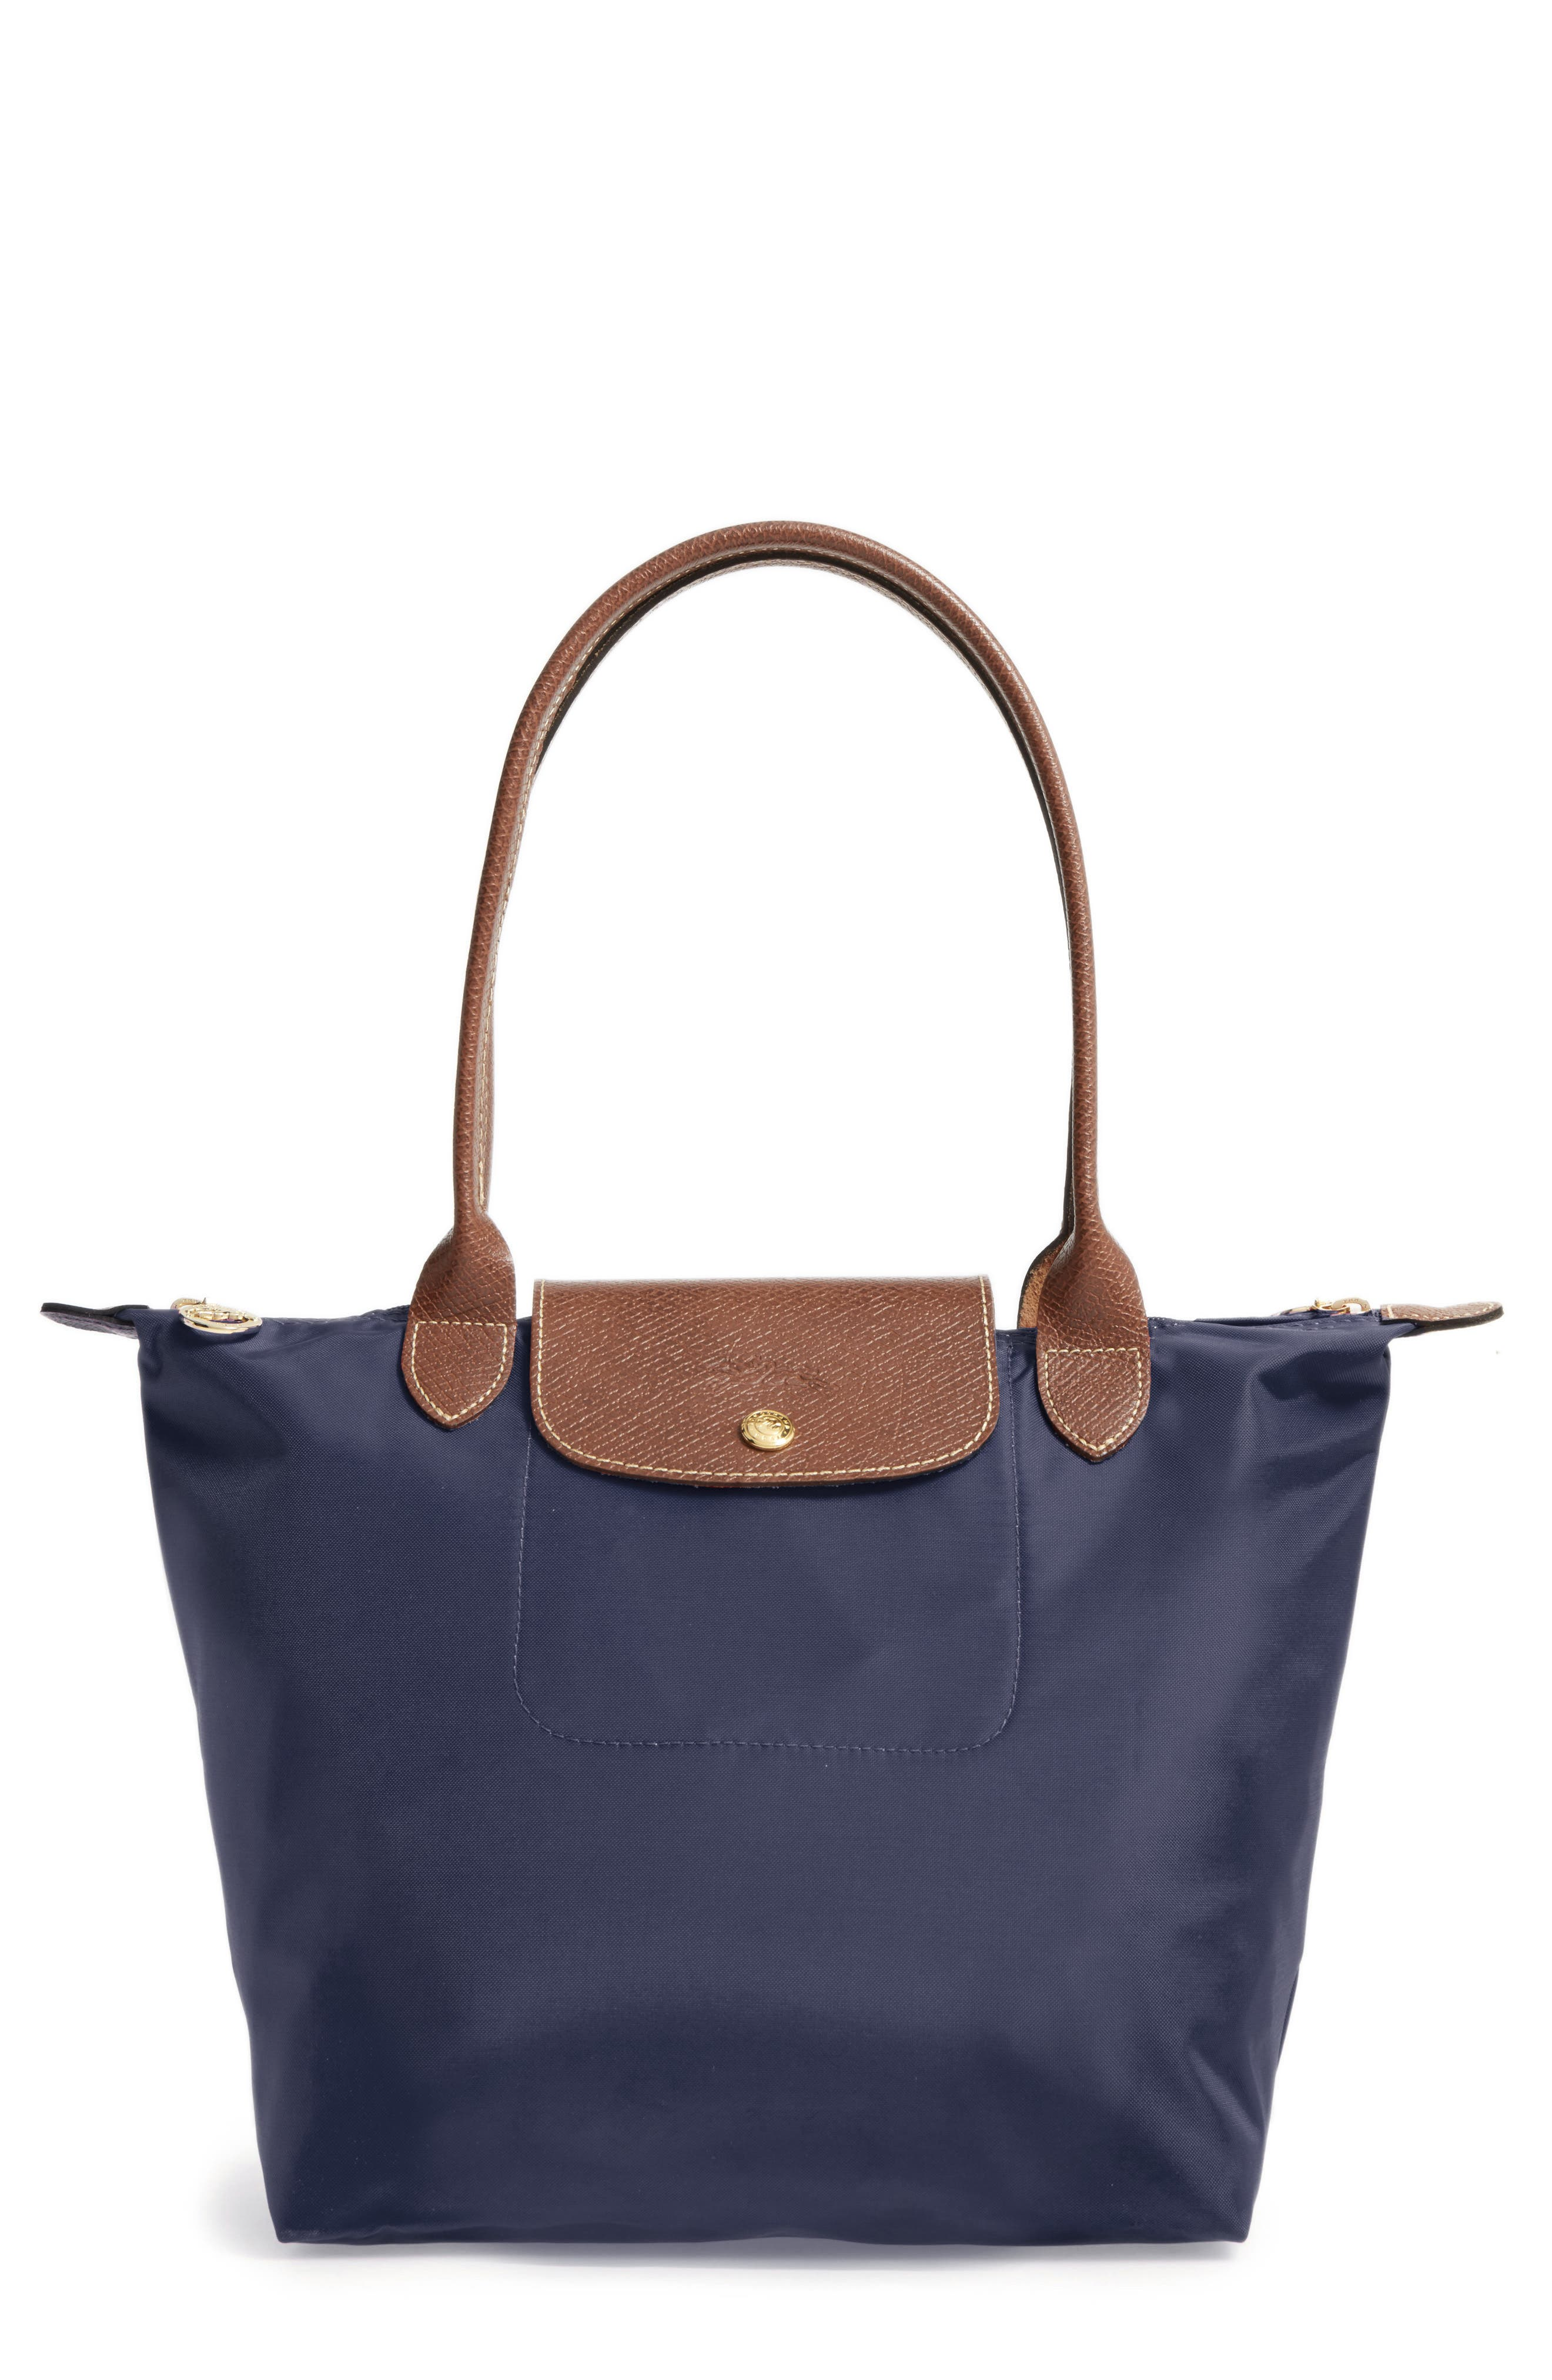 LONGCHAMP 'Small Le Pliage' Tote, Main, color, NEW NAVY